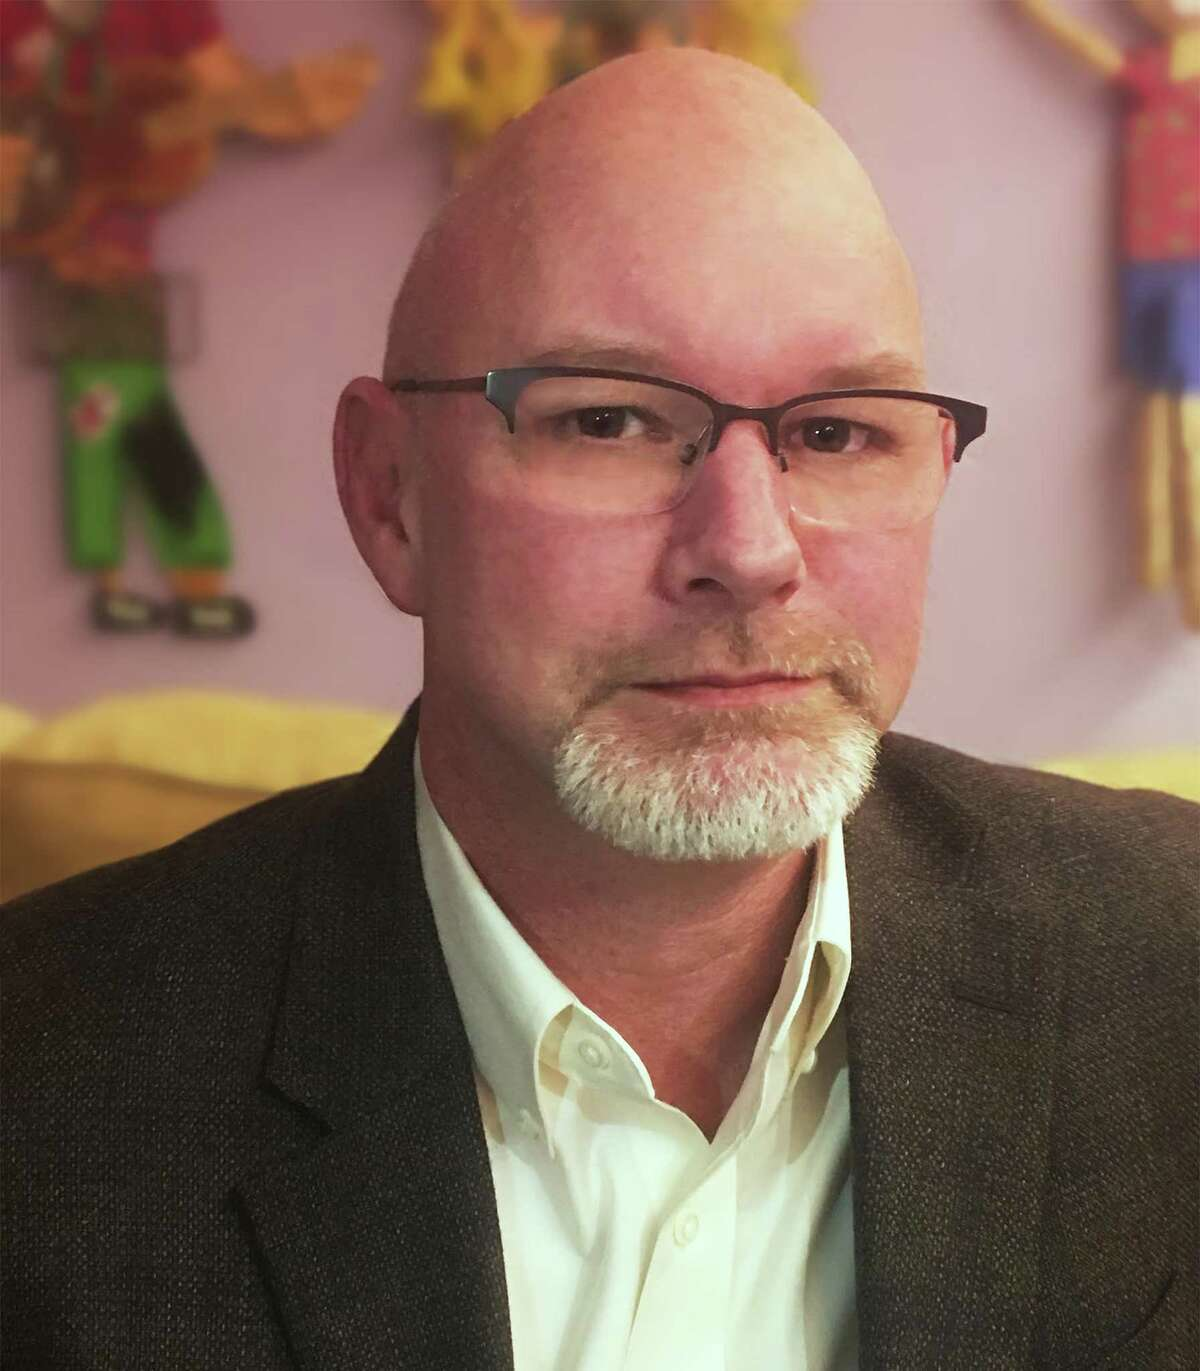 Jeff Rodgers is the new executive director of the Berkshire Museum in Pittsfield, Mass. (Provided photo.)